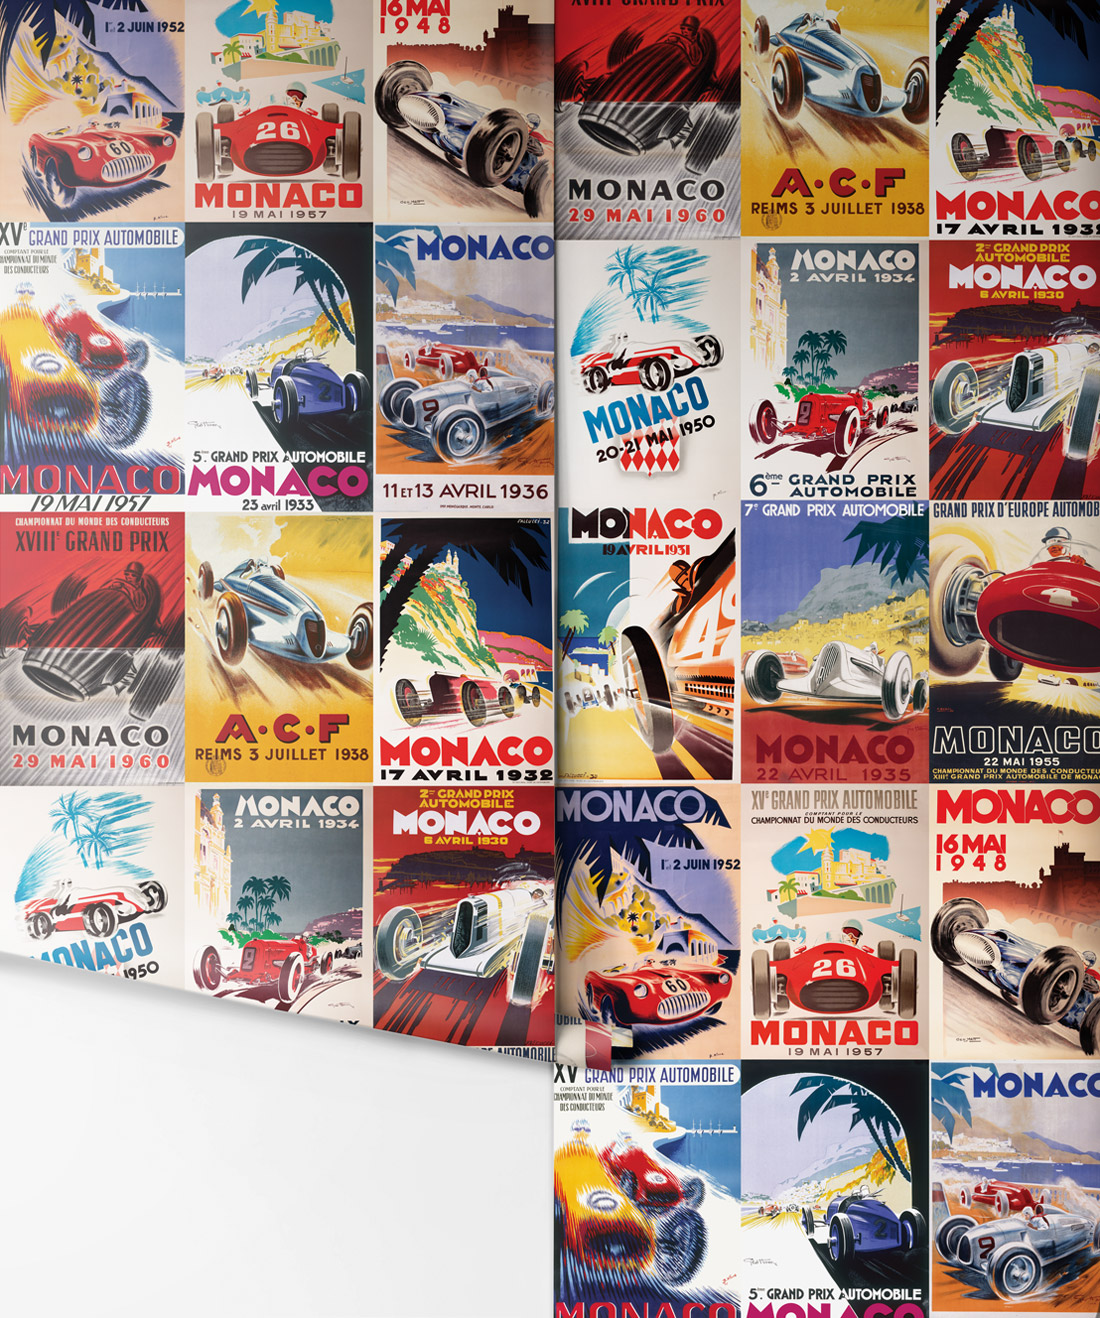 Circuit De Monaco Vintage Race Car Wallpaper Milton King Vintage Racing Car Wallpapers Vintage Race Car